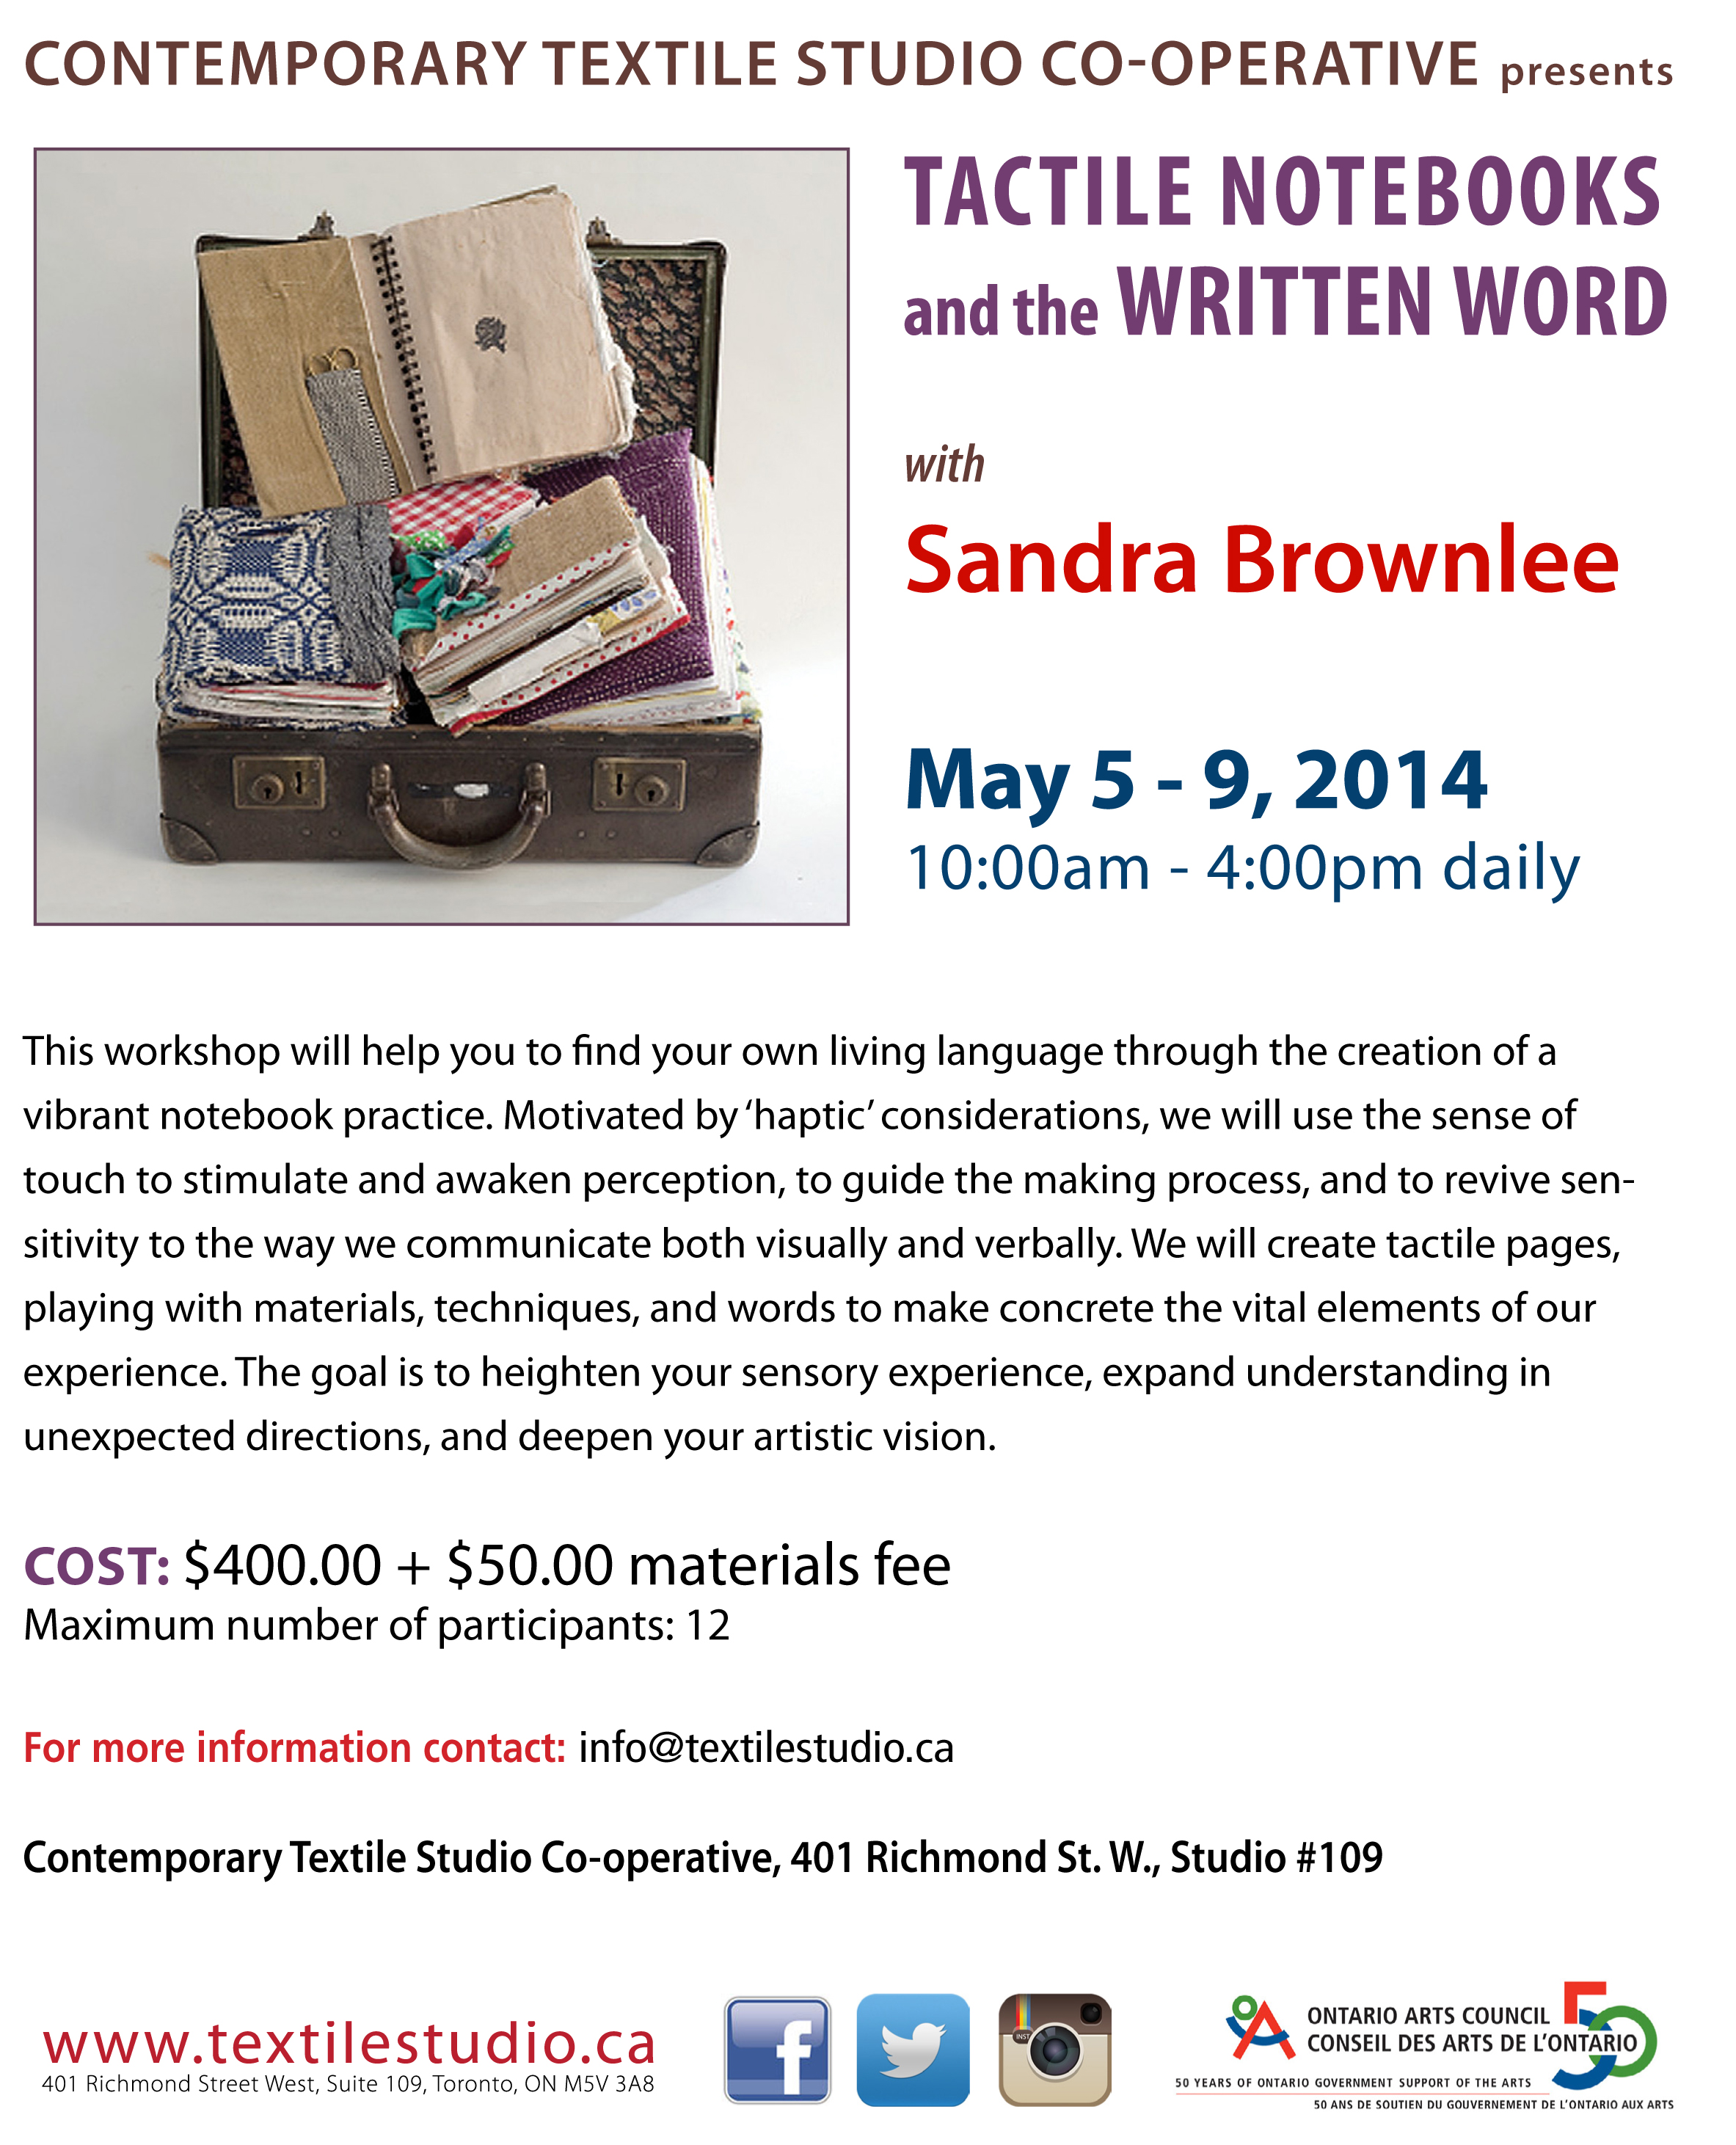 Sandra Brownlee workshop